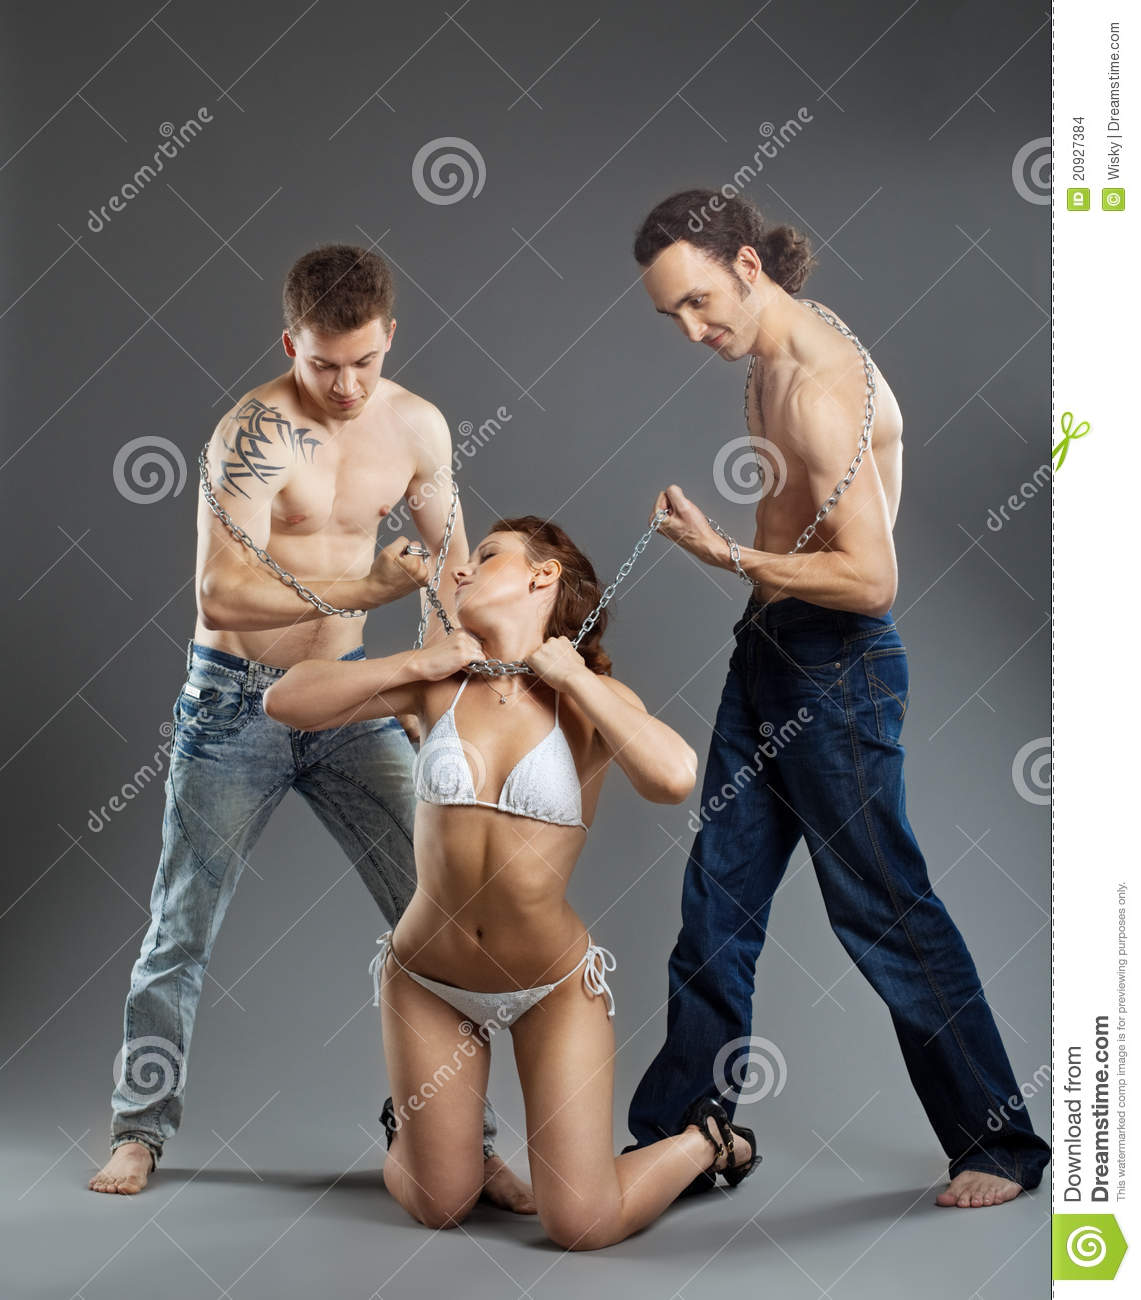 Men on men bondage